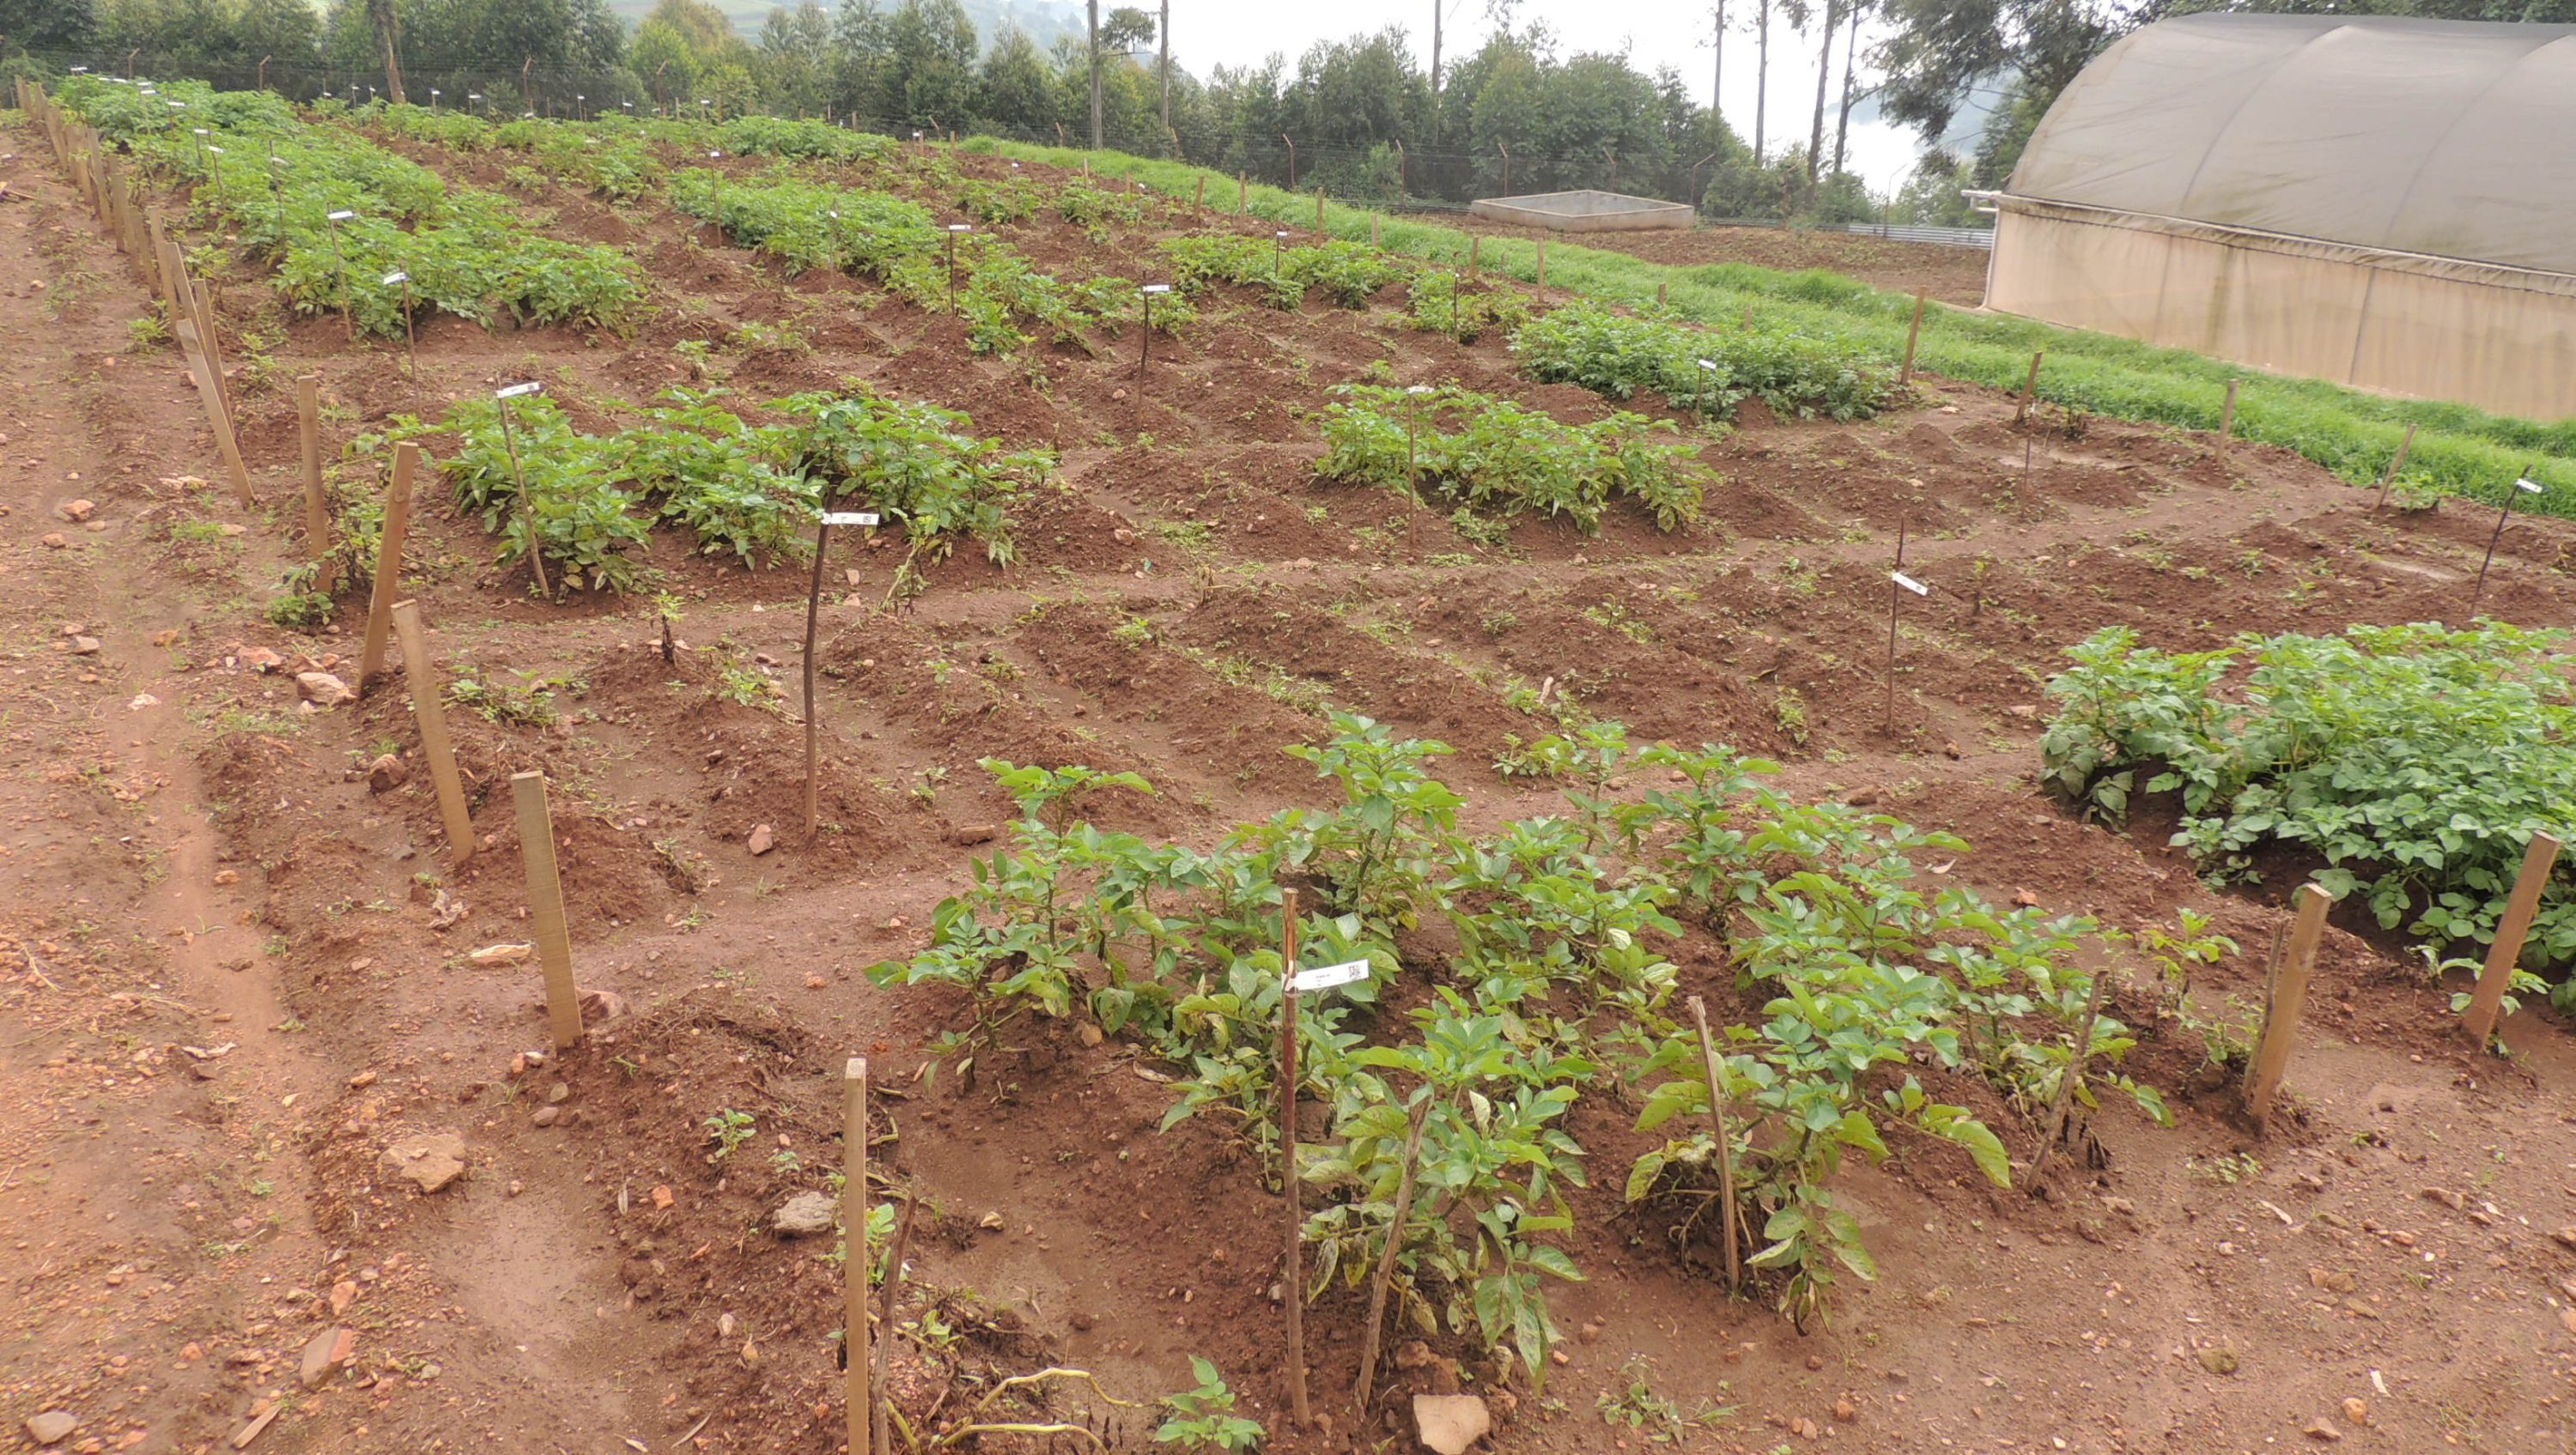 Field trial view of late blight resistant potatoes in Uganda